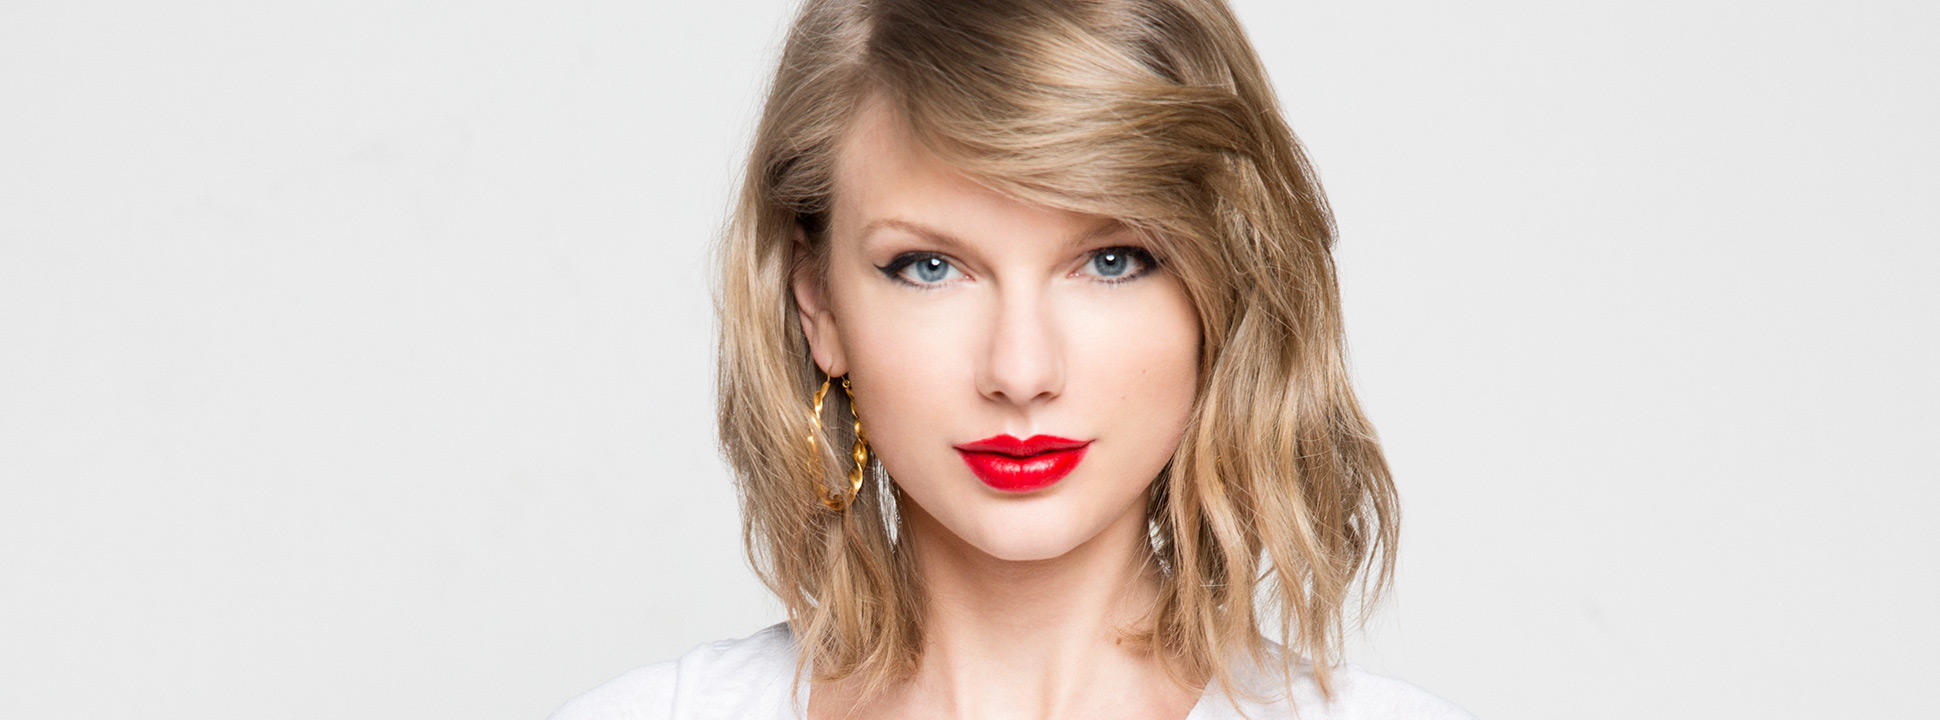 Top 5 Life Lessons From Taylor Swift S 1989 Album The Memo